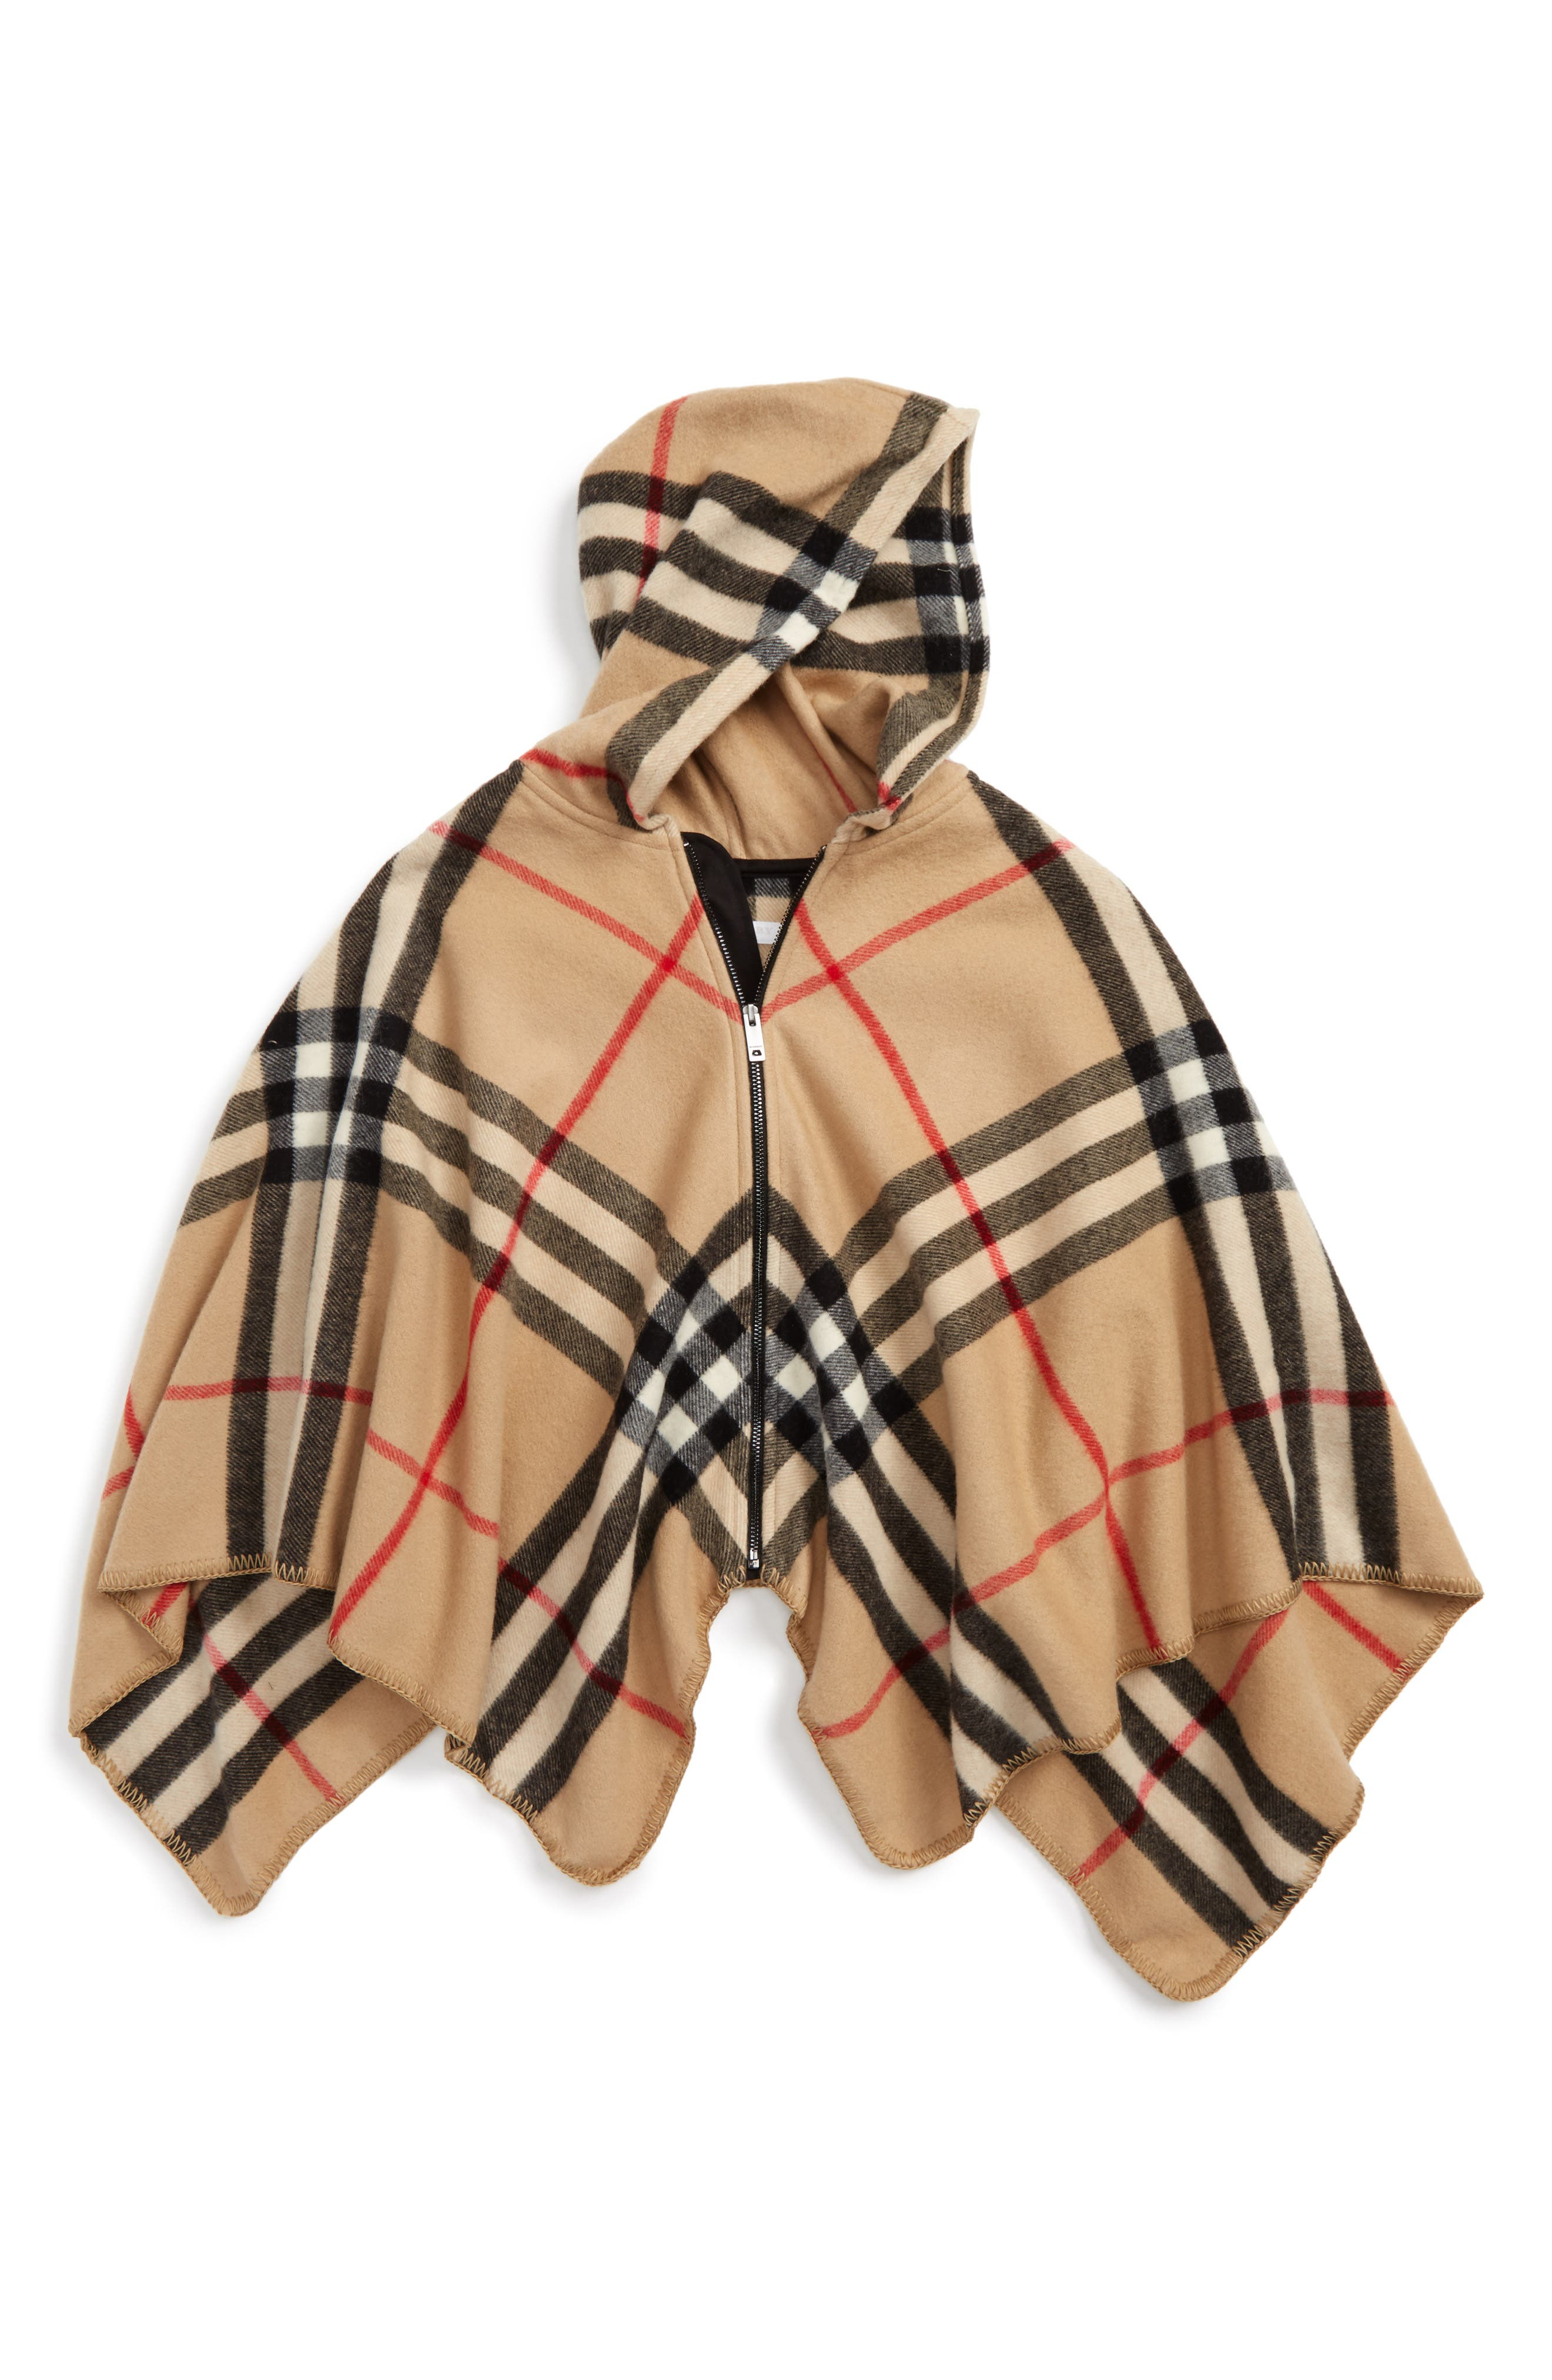 Burberry Vickie Check Wool & Cashmere Hooded Cape (Little Girls & Big Girls)